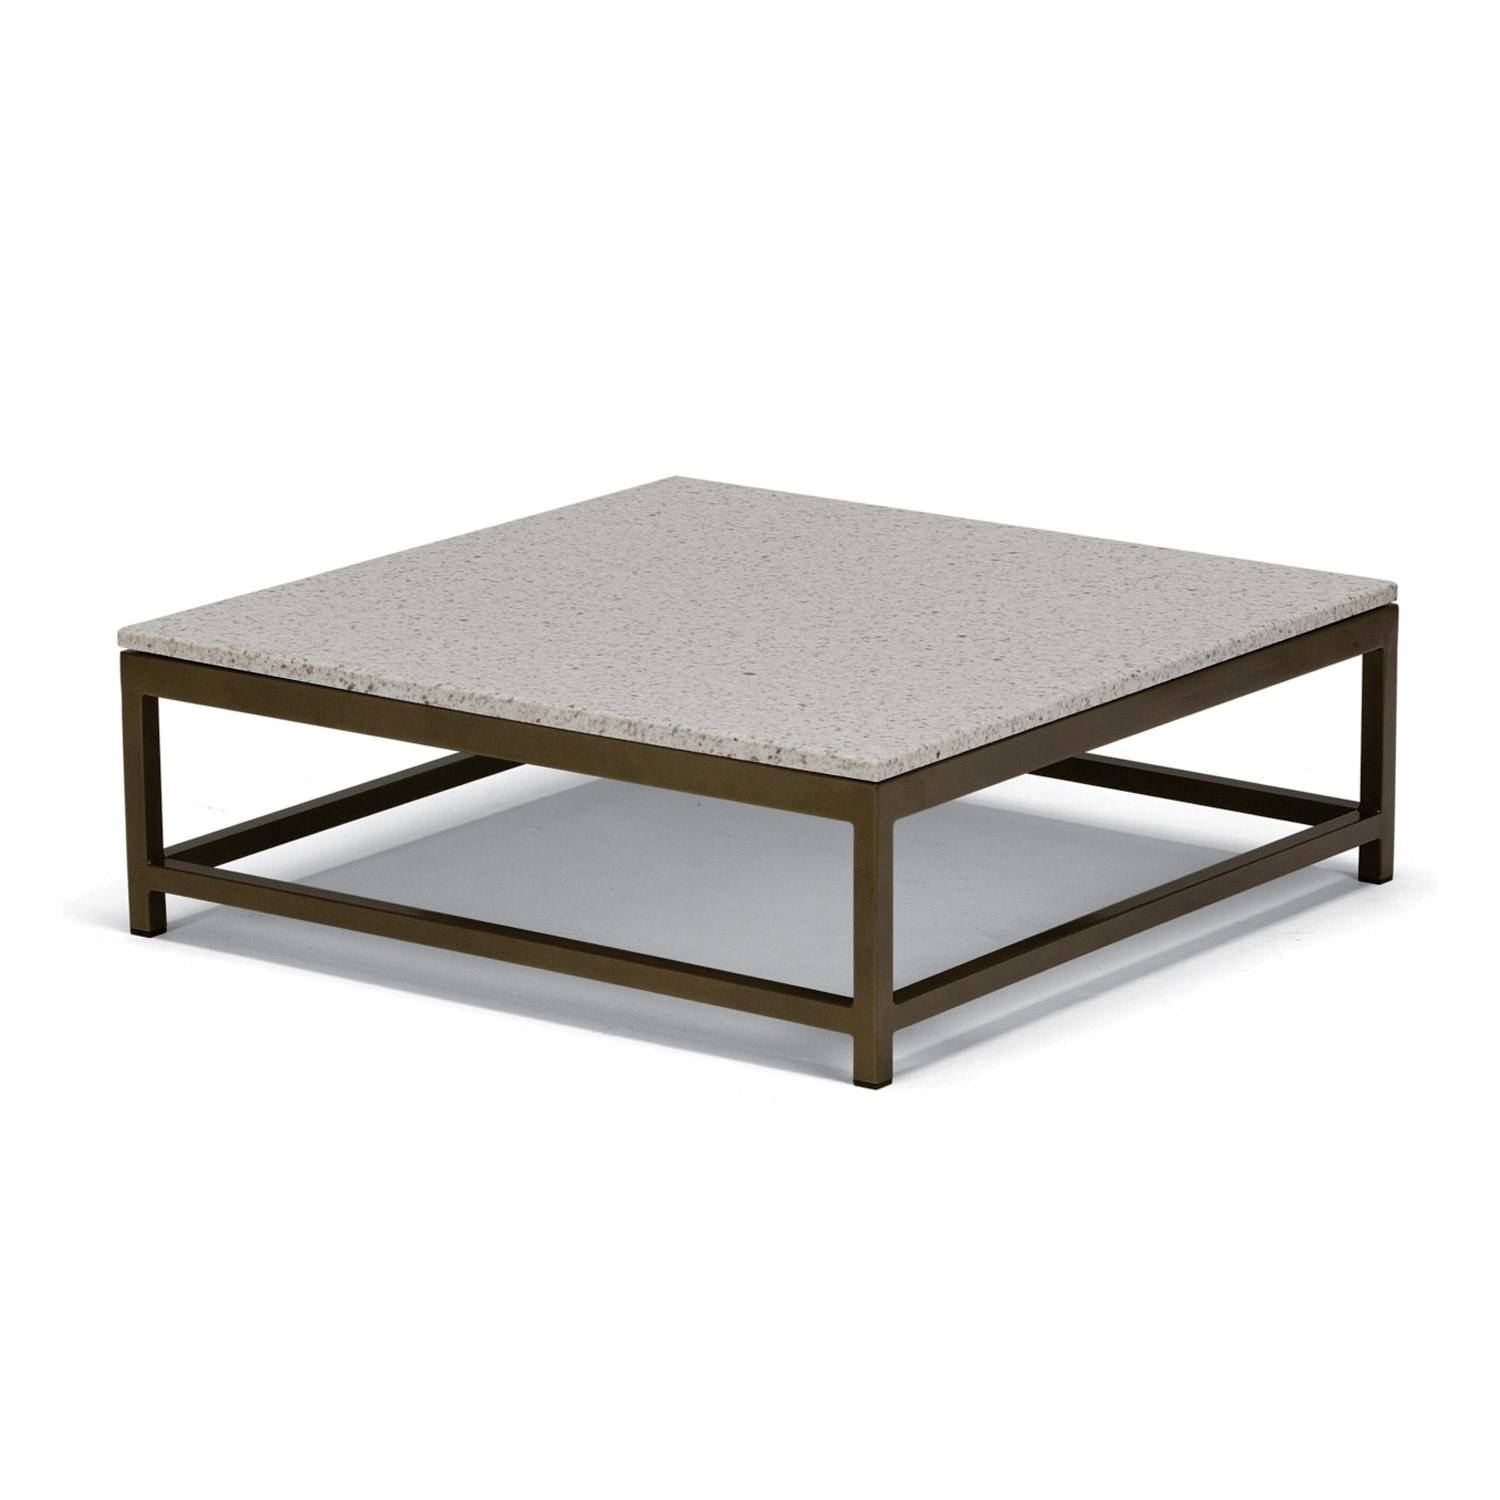 Marvelous Stone Top Coffee Table Designs – Stone And Wood Coffee with regard to Square Stone Coffee Tables (Image 18 of 30)